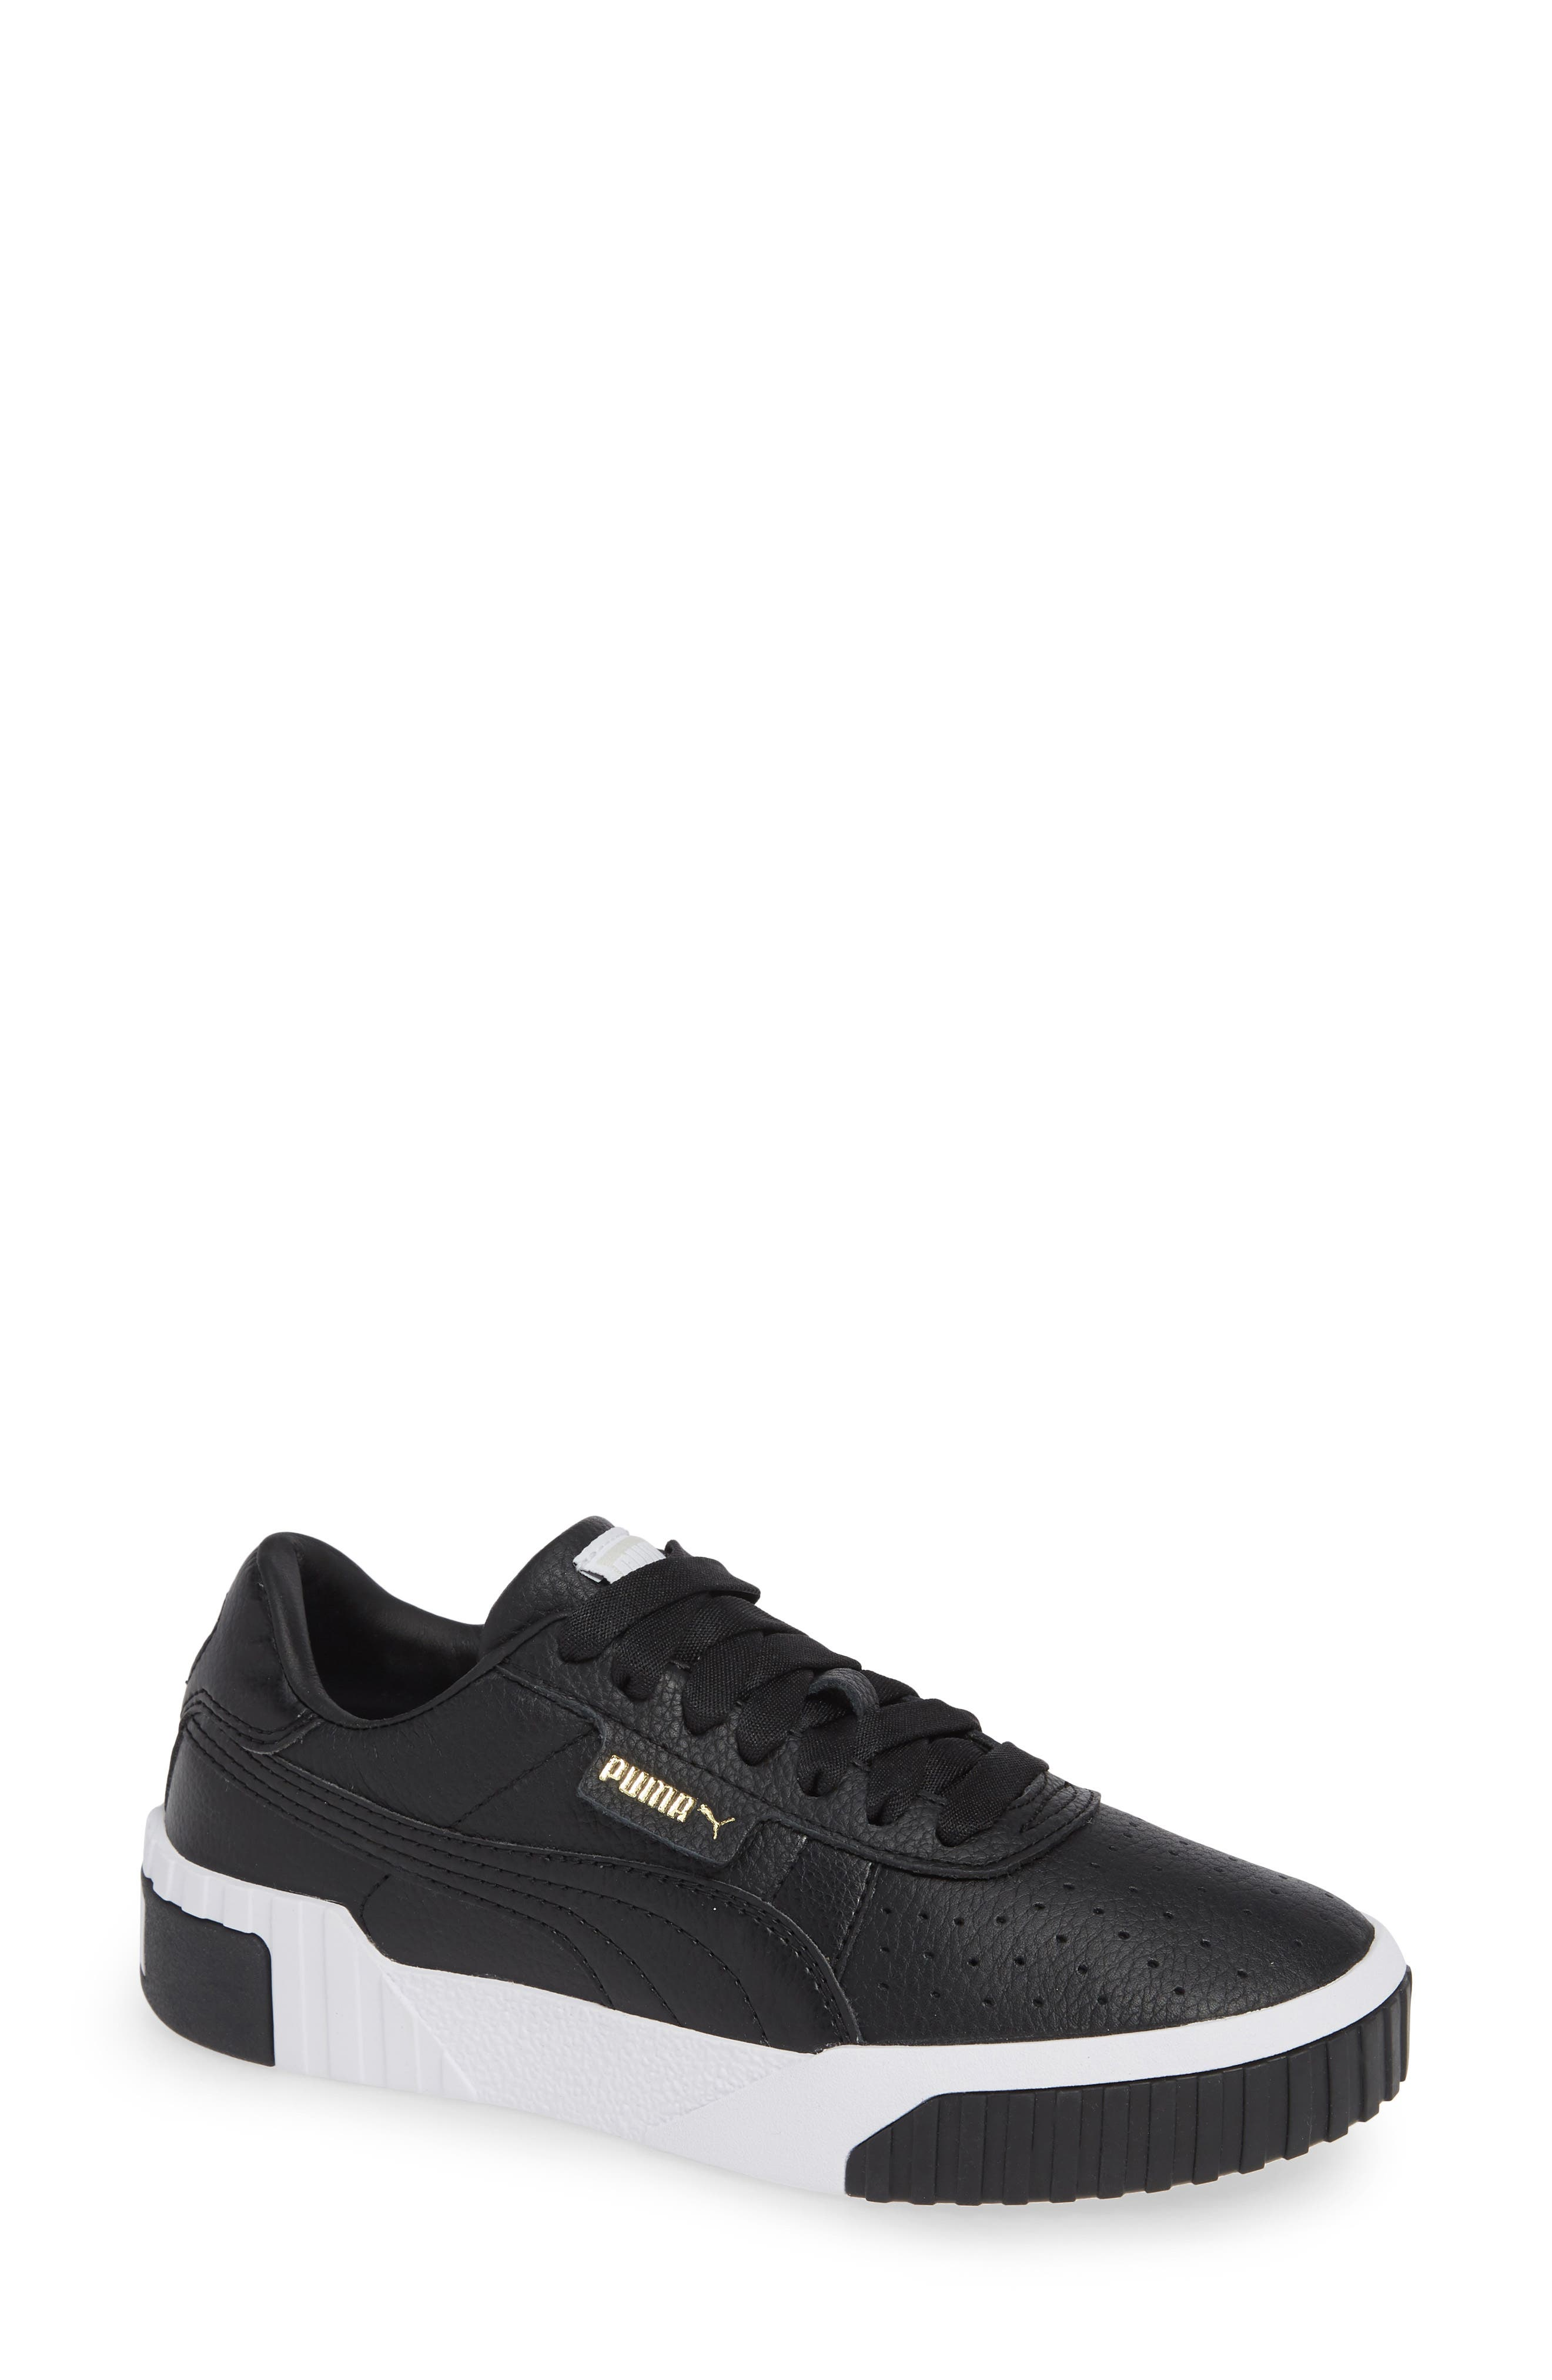 PUMA Cali Sneaker, Main, color, PUMA BLACK/ PUMA WHITE